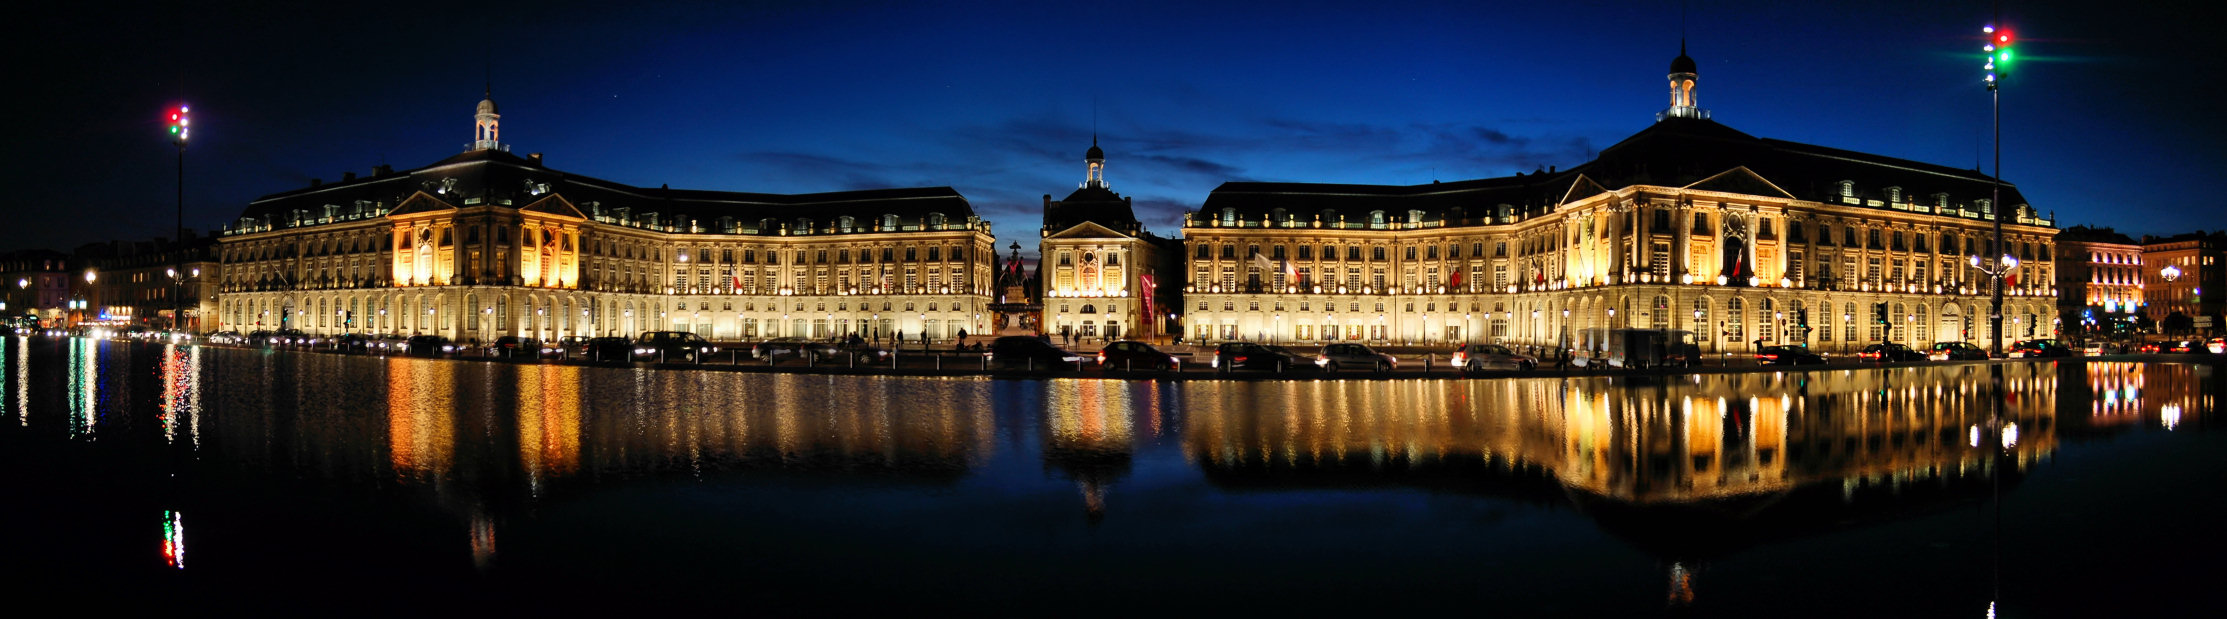 File place de la bourse bordeaux de wikimedia for Miroir d eau bordeaux